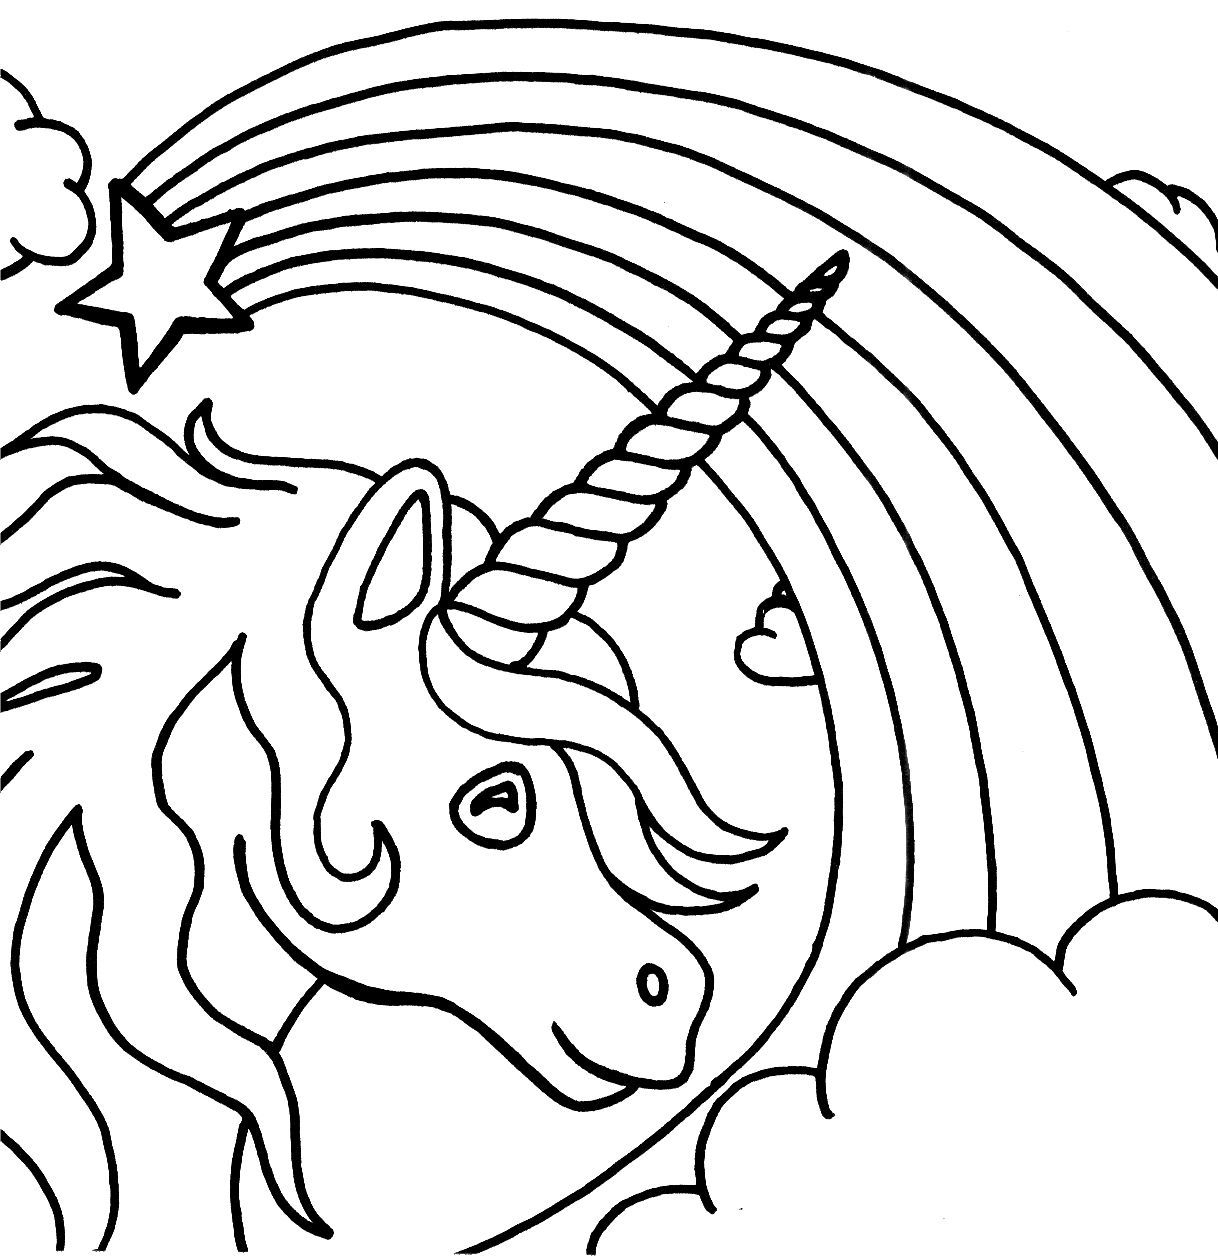 Coloring Pages : Unicorn Coloring For Kids Picture Ideas Pages Free - Free Printable Unicorn Coloring Pages